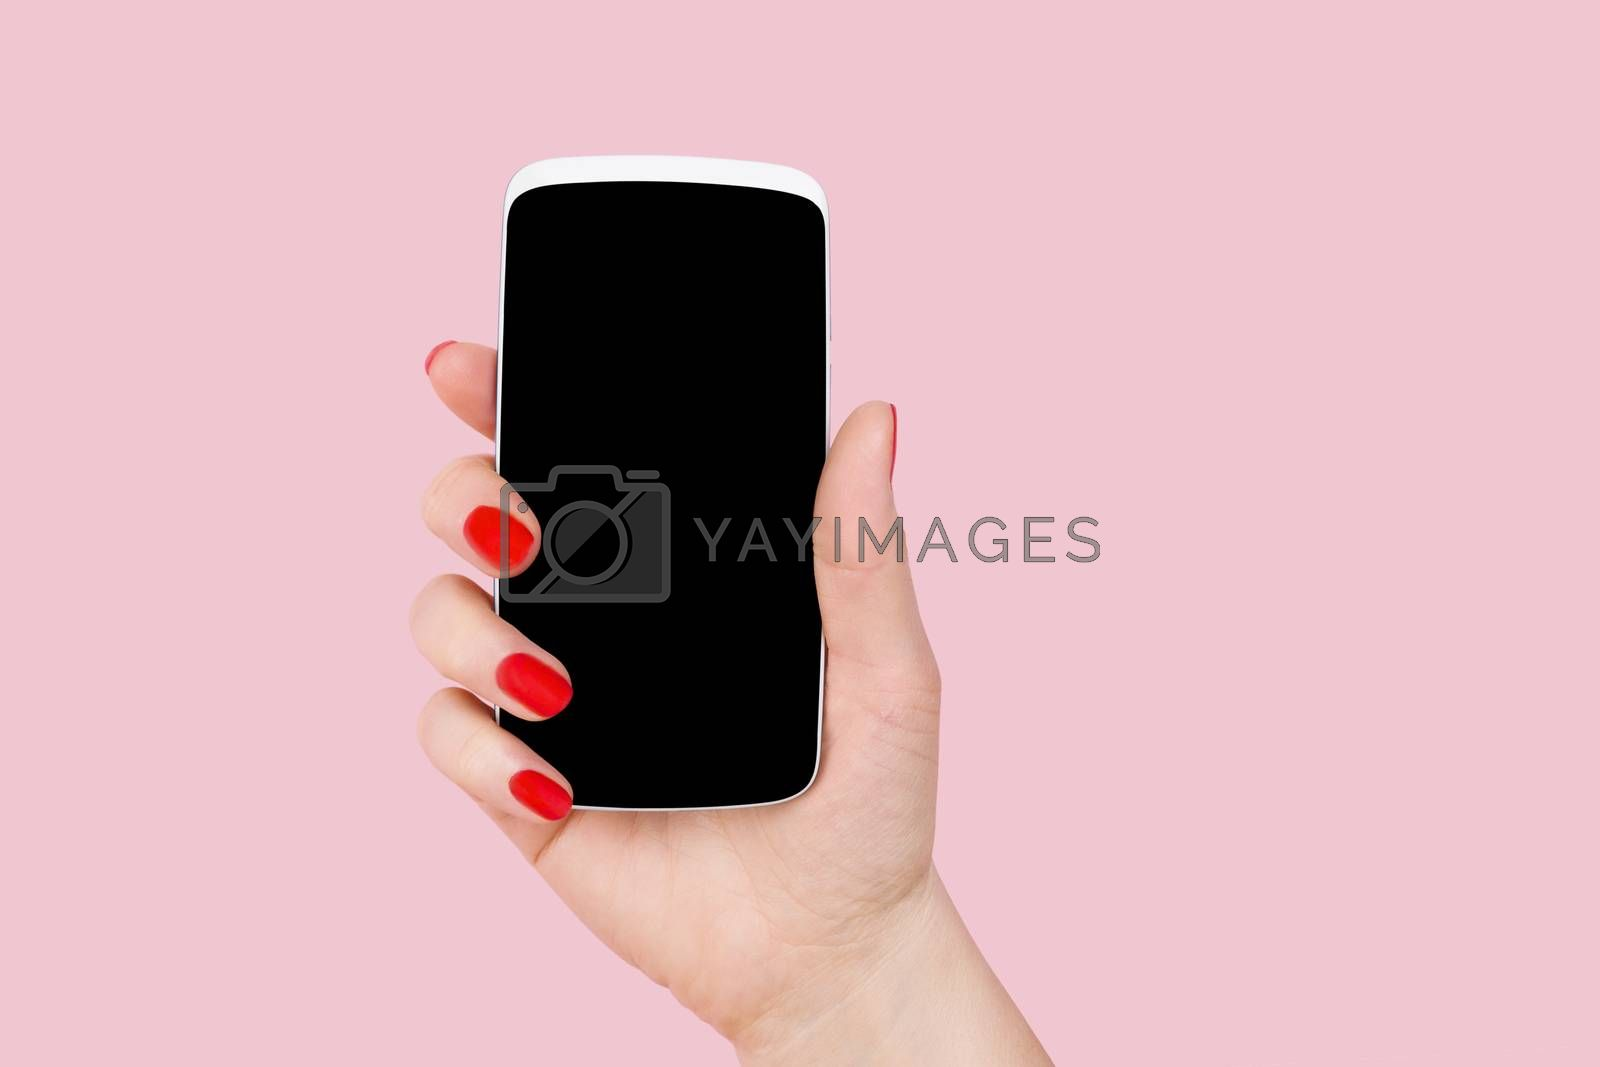 Smartphone. Female hand holding smartphone in hand. Woman and technology, feminine technology.